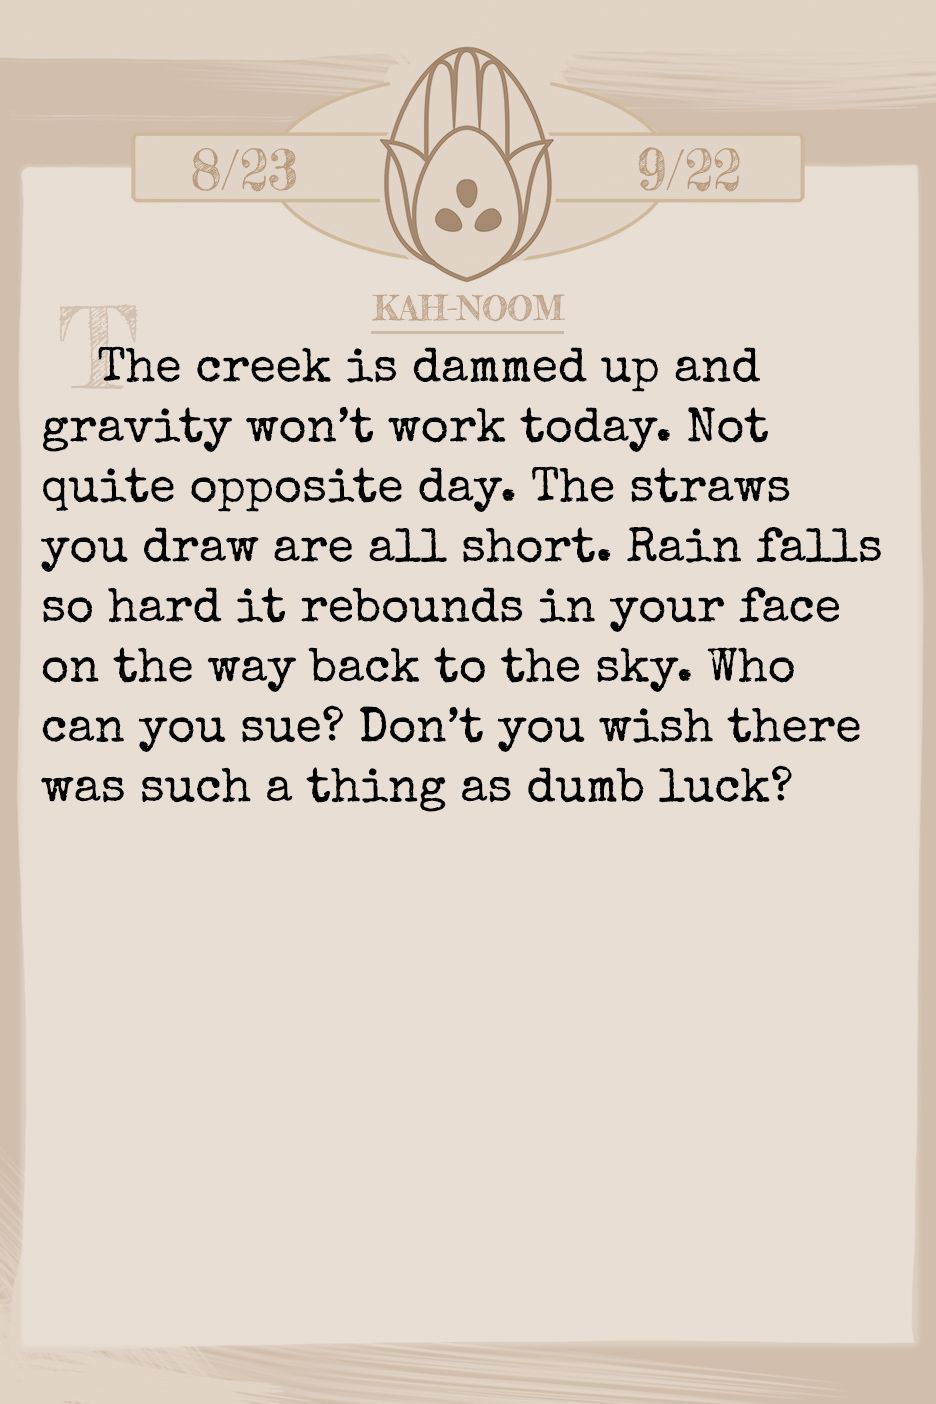 December 2019 Horoscope (Old sign: Virgo) The creek is dammed up and gravity won't work today. Not quite opposite day. The straws you draw are all short. Rain falls so hard it rebounds in your face on the way back to the sky. Who can you sue? Don't you wish there was such a thing as dumb luck?